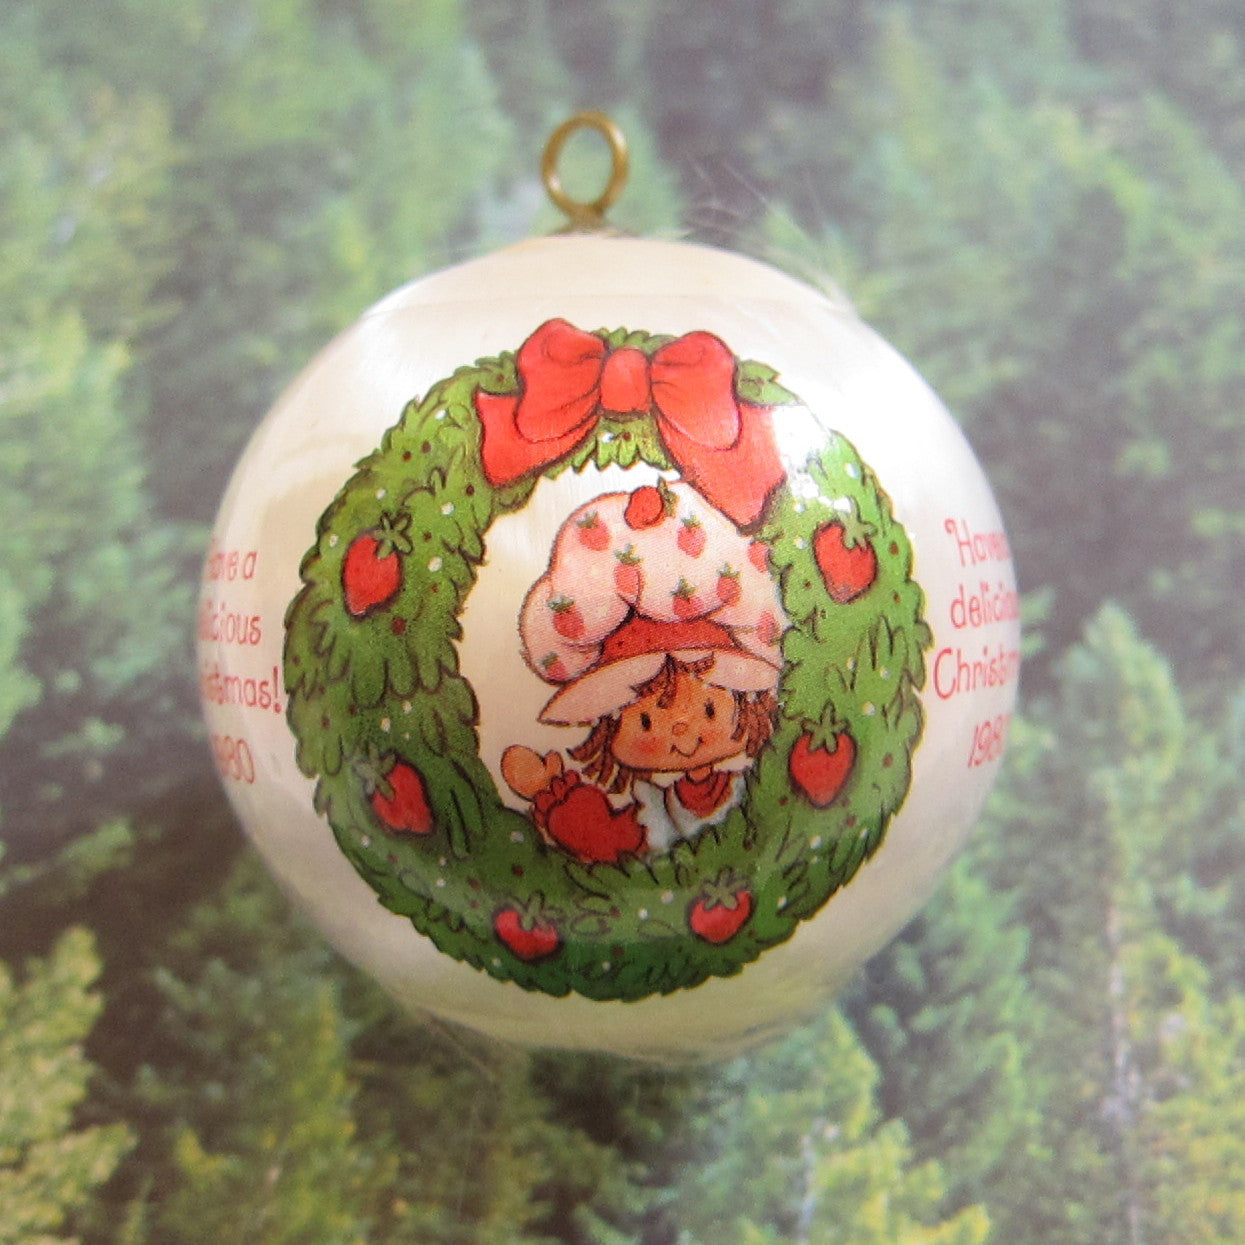 Strawberry christmas ornaments - Have A Delicious Christmas 1980 Strawberry Shortcake Ornament